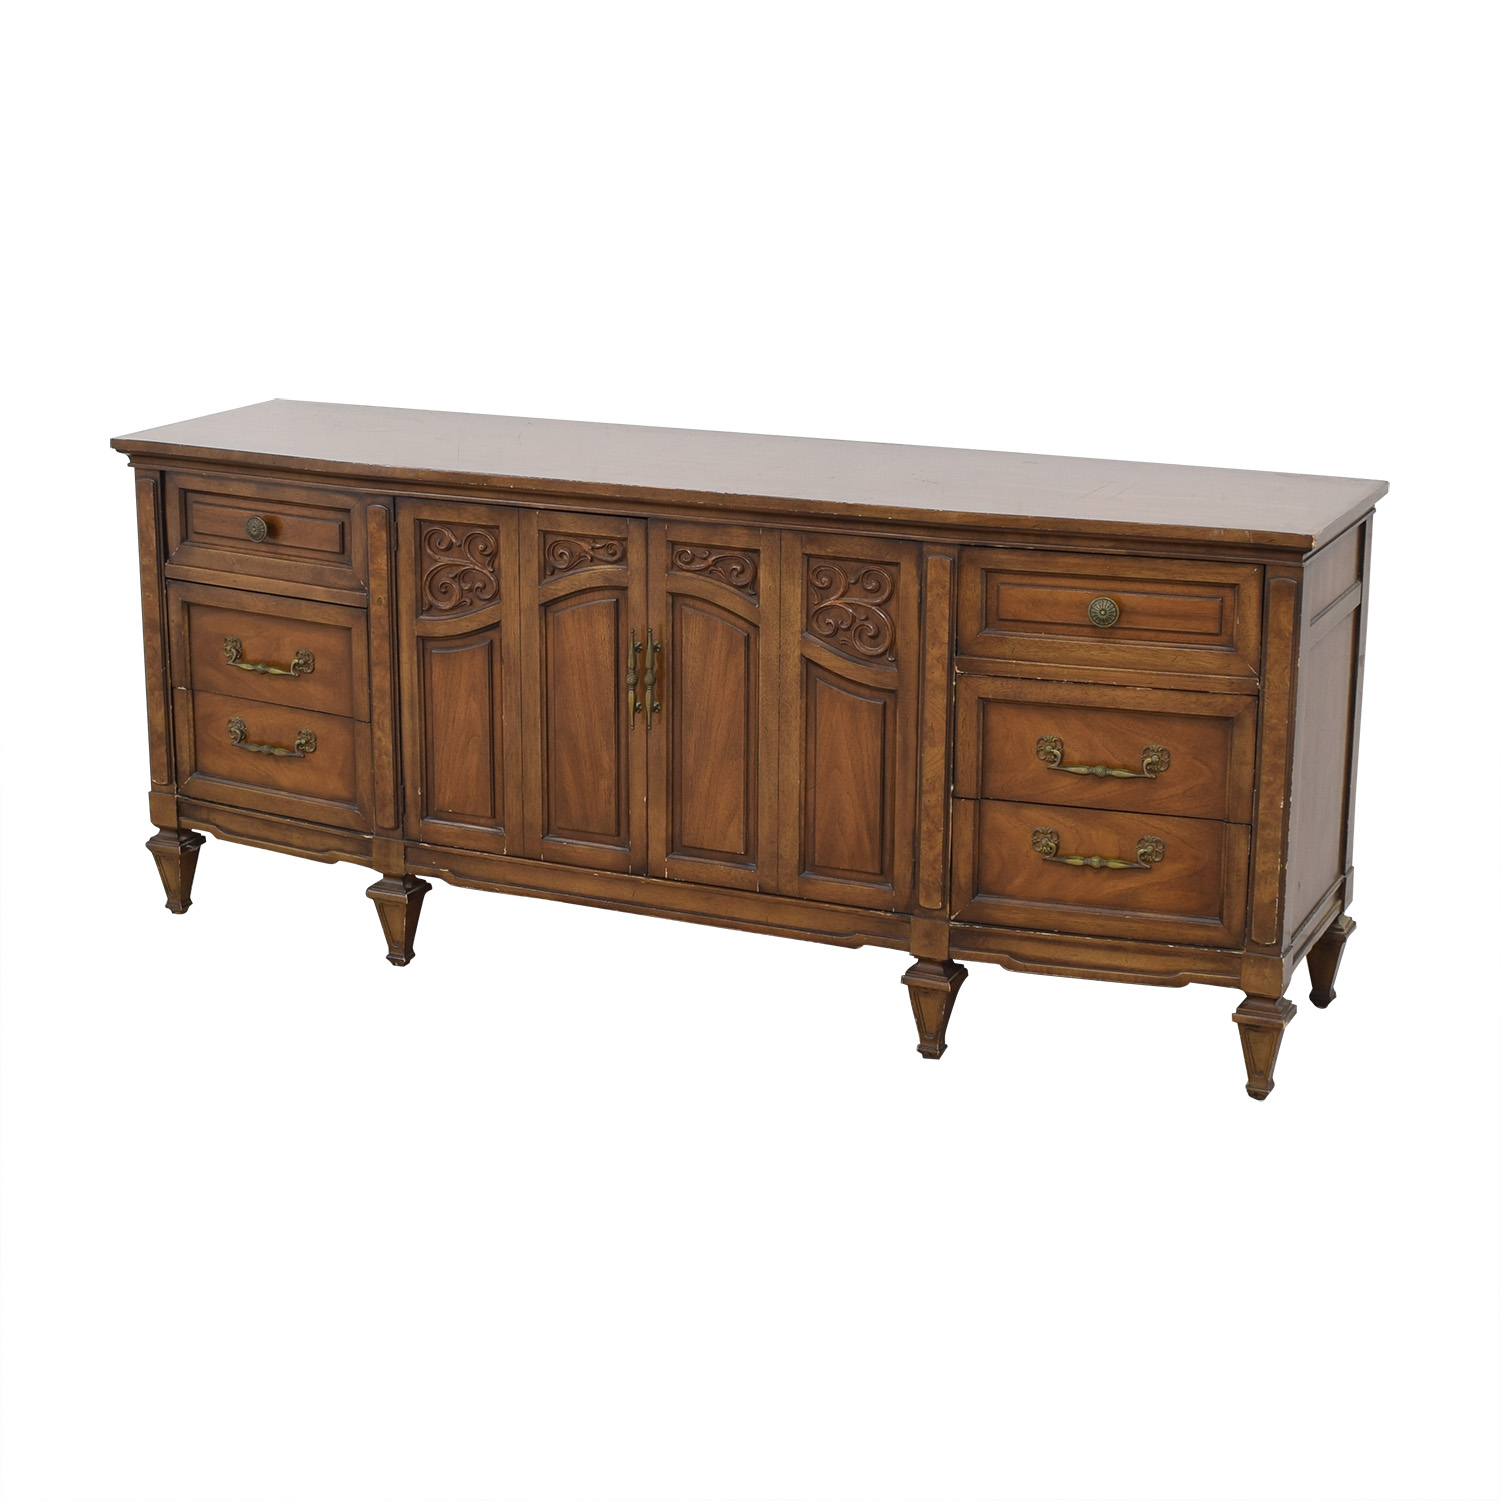 buy Hoke Furniture Company Hoke Furniture Triple Dresser online